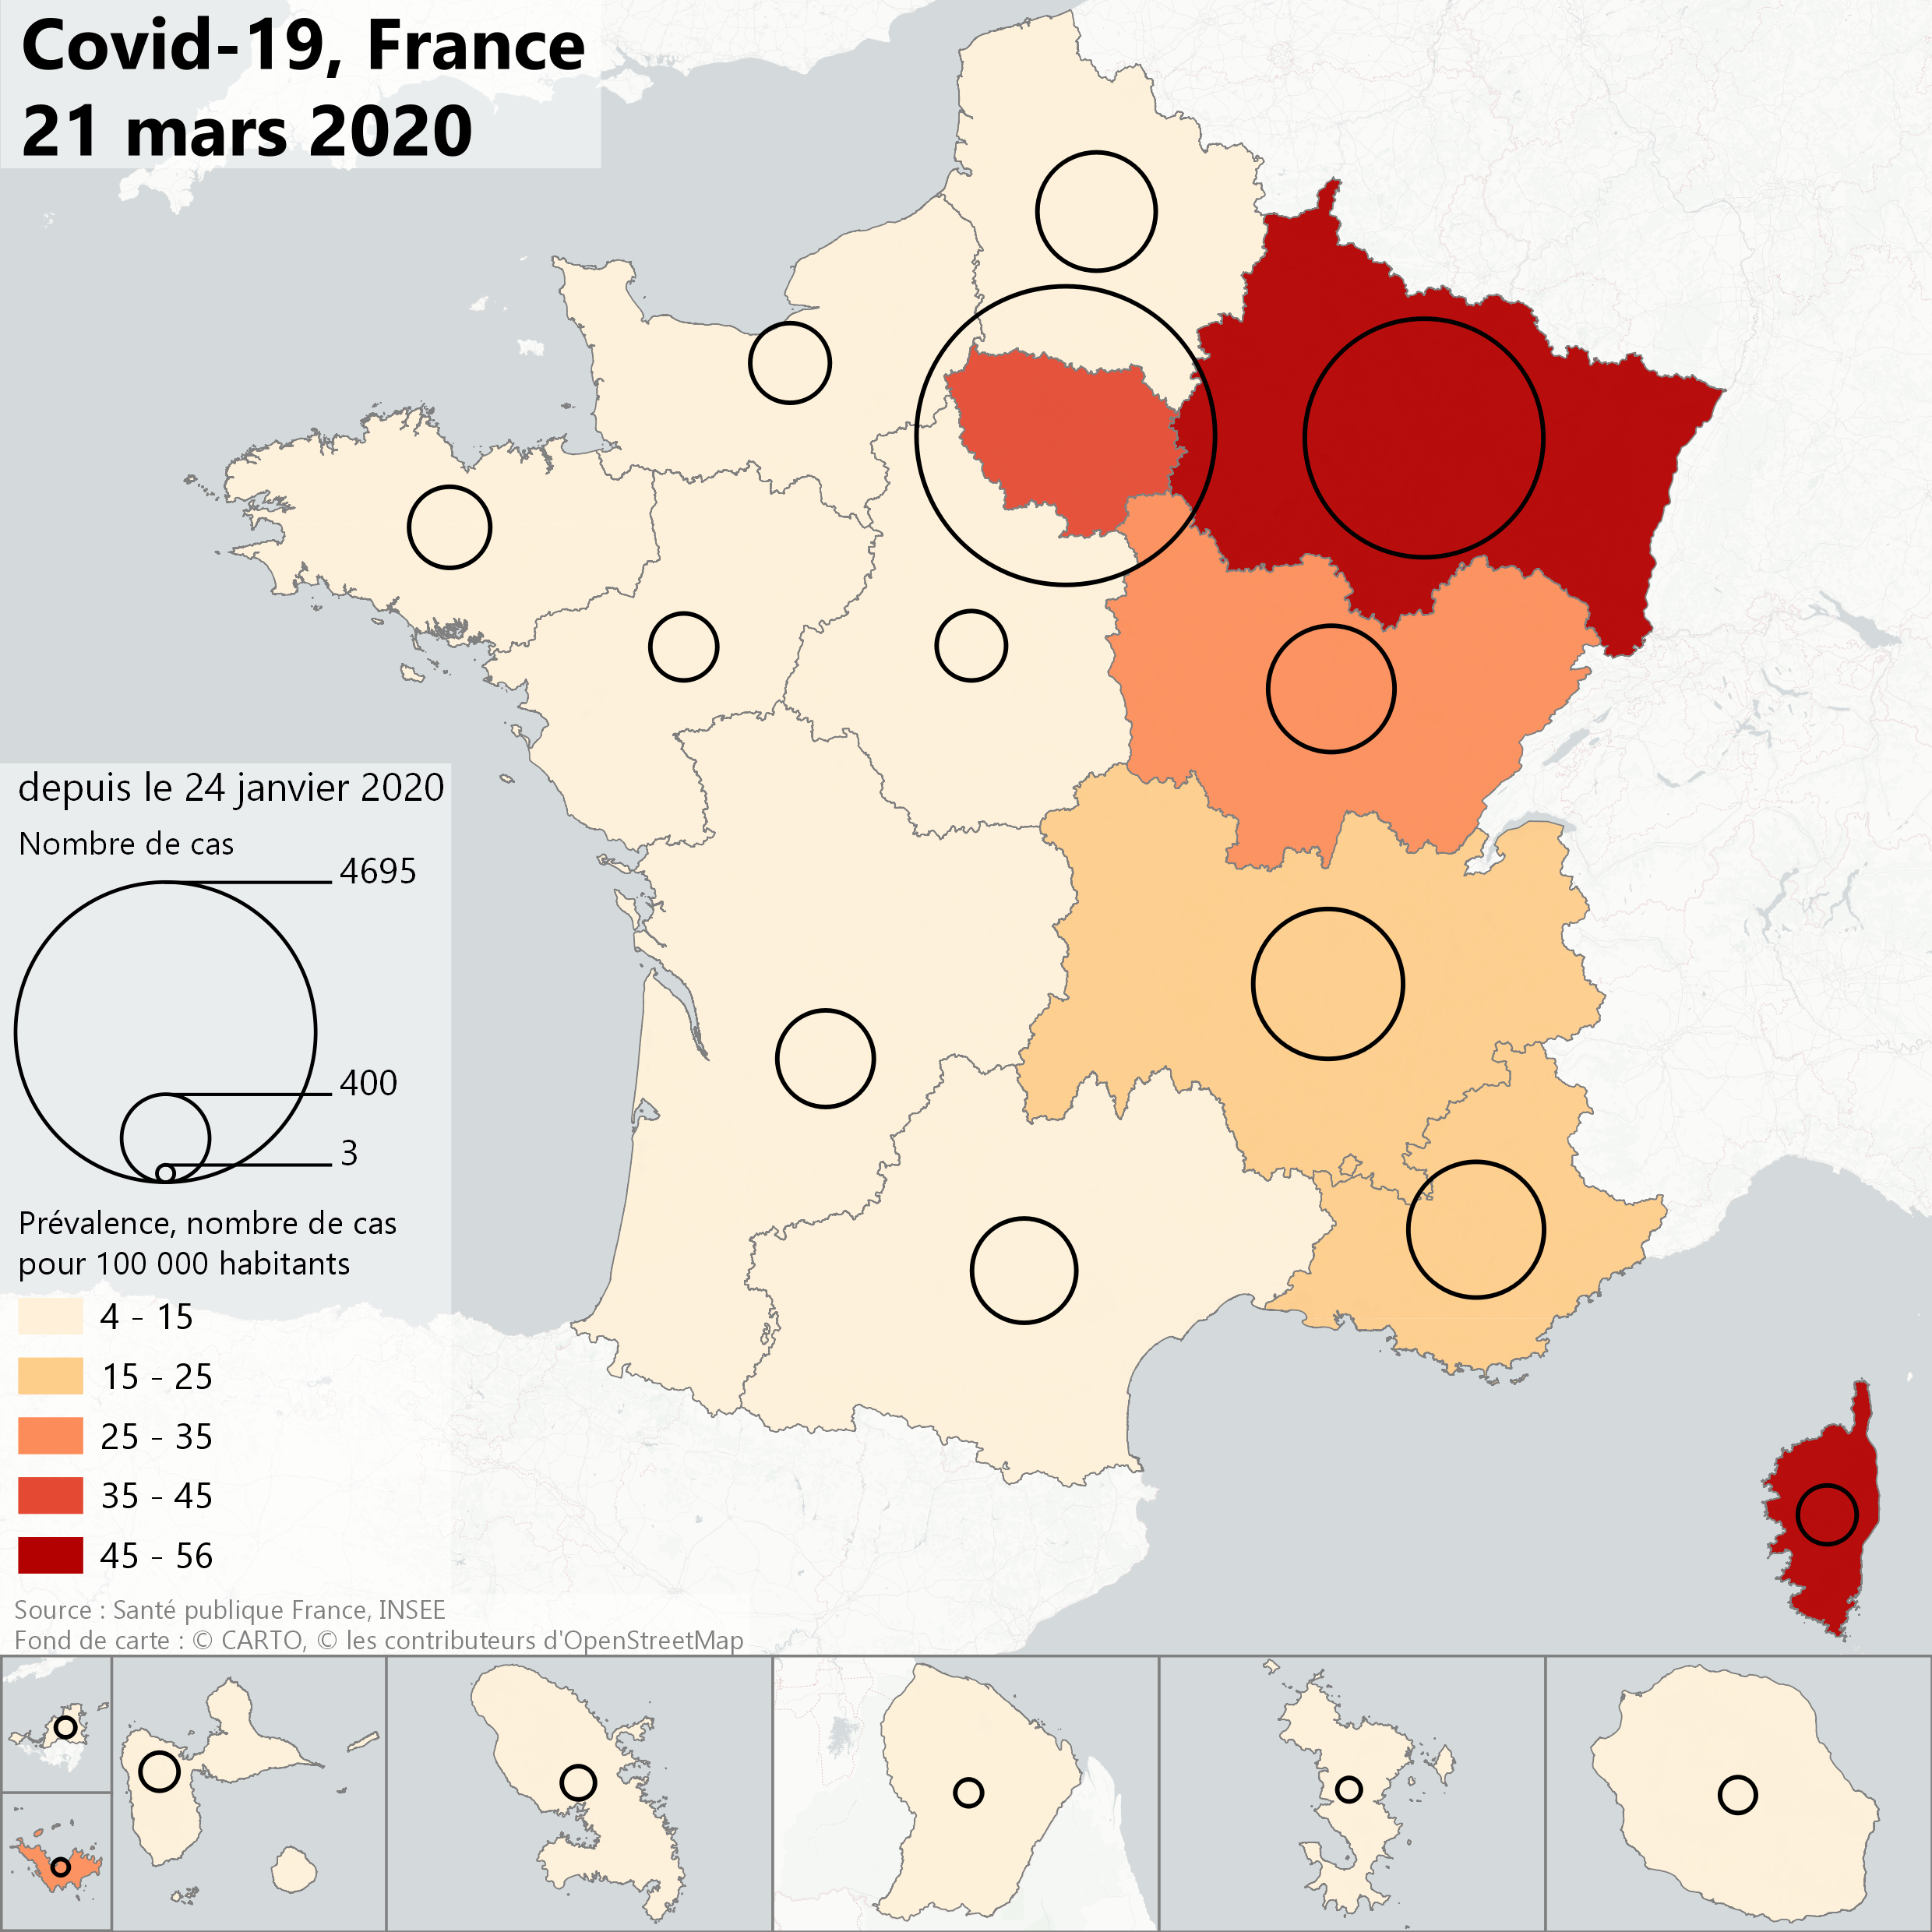 carte france region 2020 File:Covid 19, France, 21 mars 2020.png   Wikimedia Commons